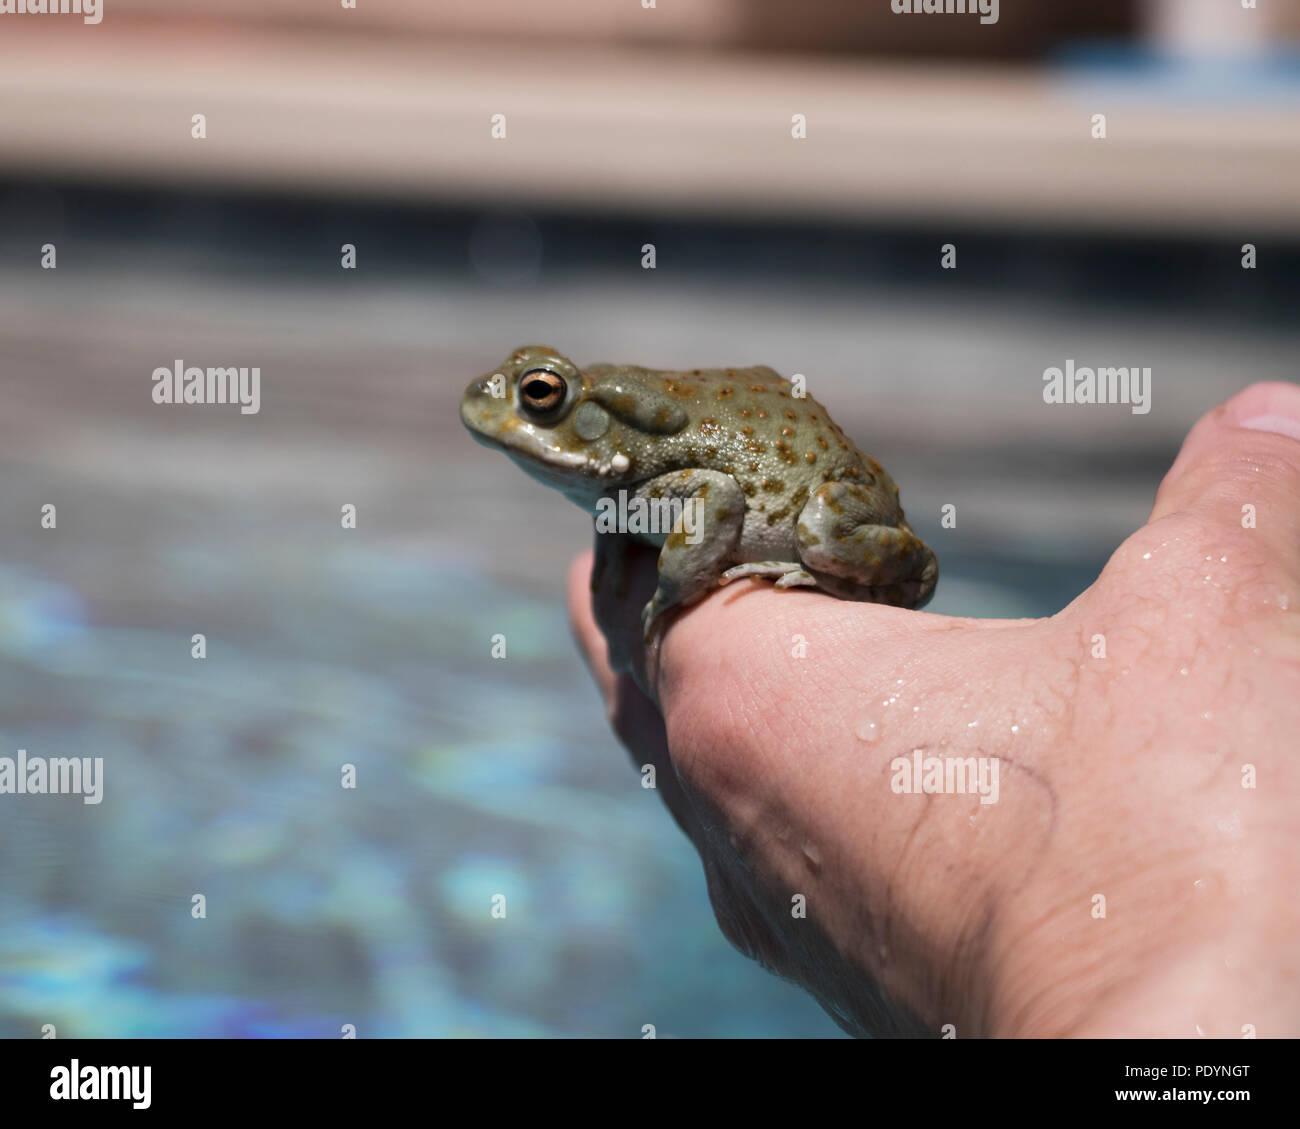 Holding a desert toad in hand. Close up of a frog with shallow dept of field background. - Stock Image